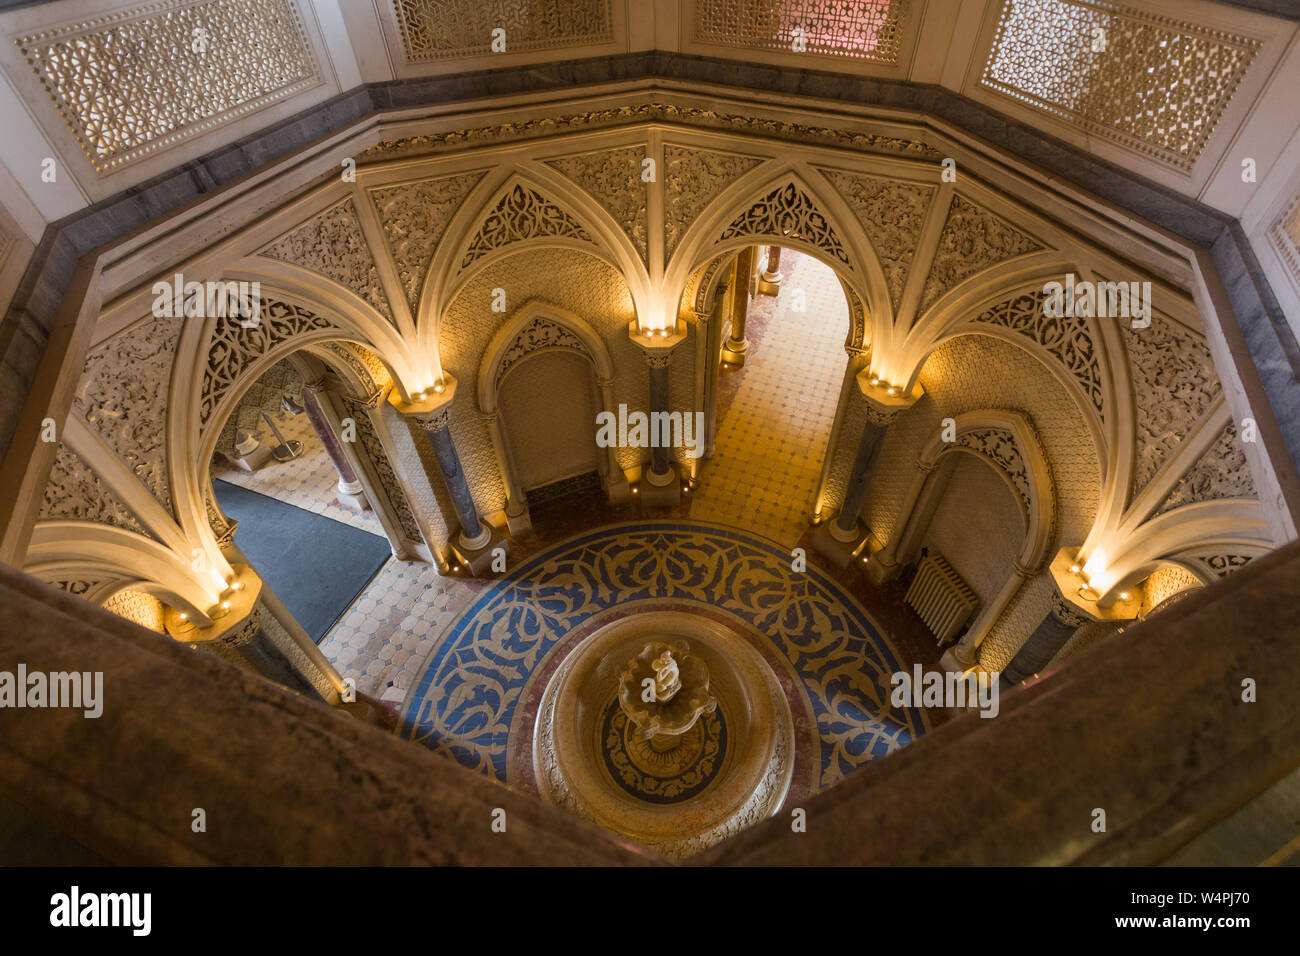 View down into hallway from dome of main tower at the UNESCO World Heritage site of the Palacio de Monserrate (Monserrate Palace), Sintra, Portugal. Stock Photo